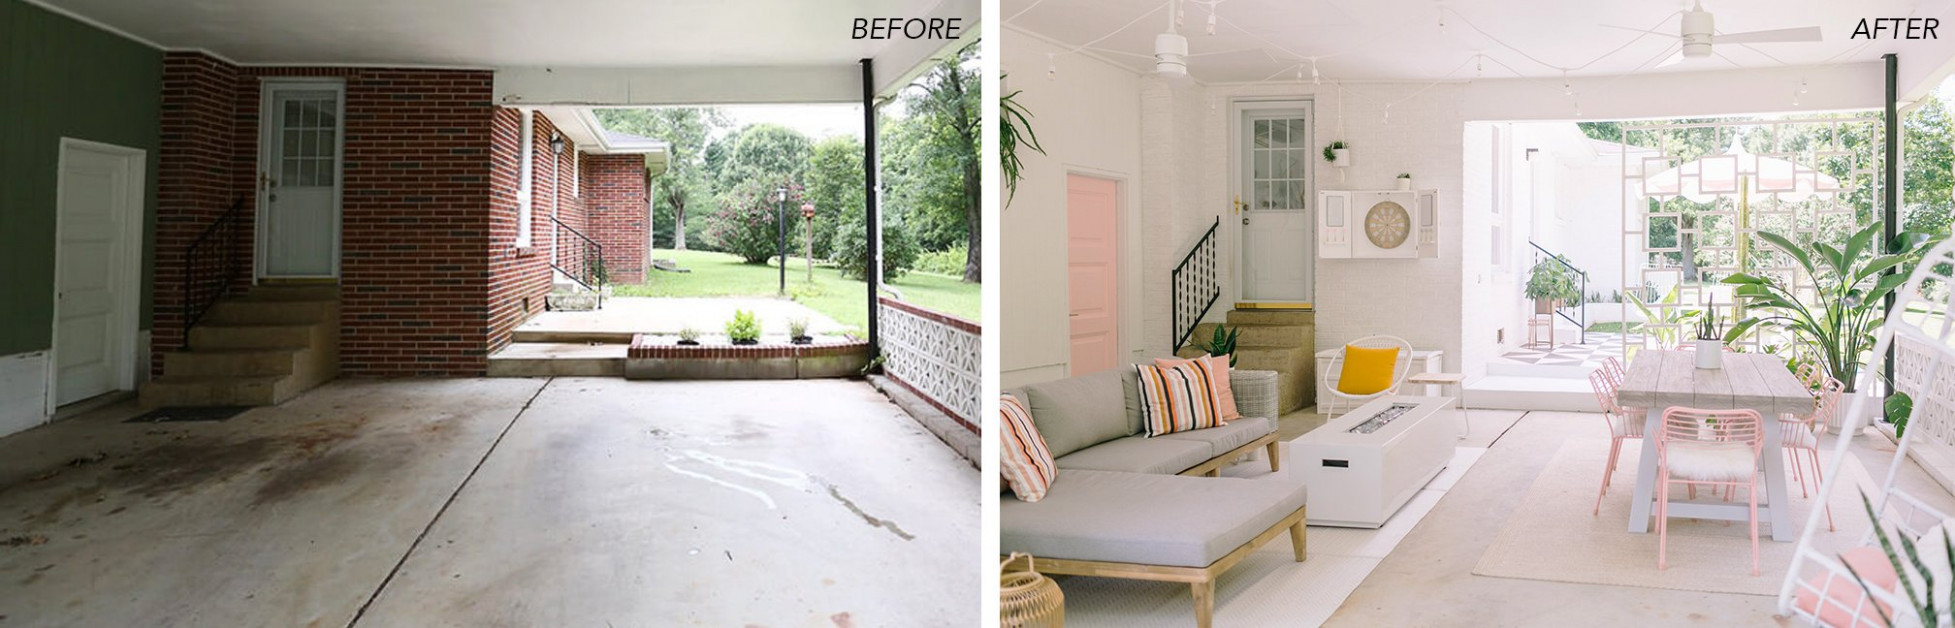 How I Turned My Carport Into An Outdoor Porch (Before + ...